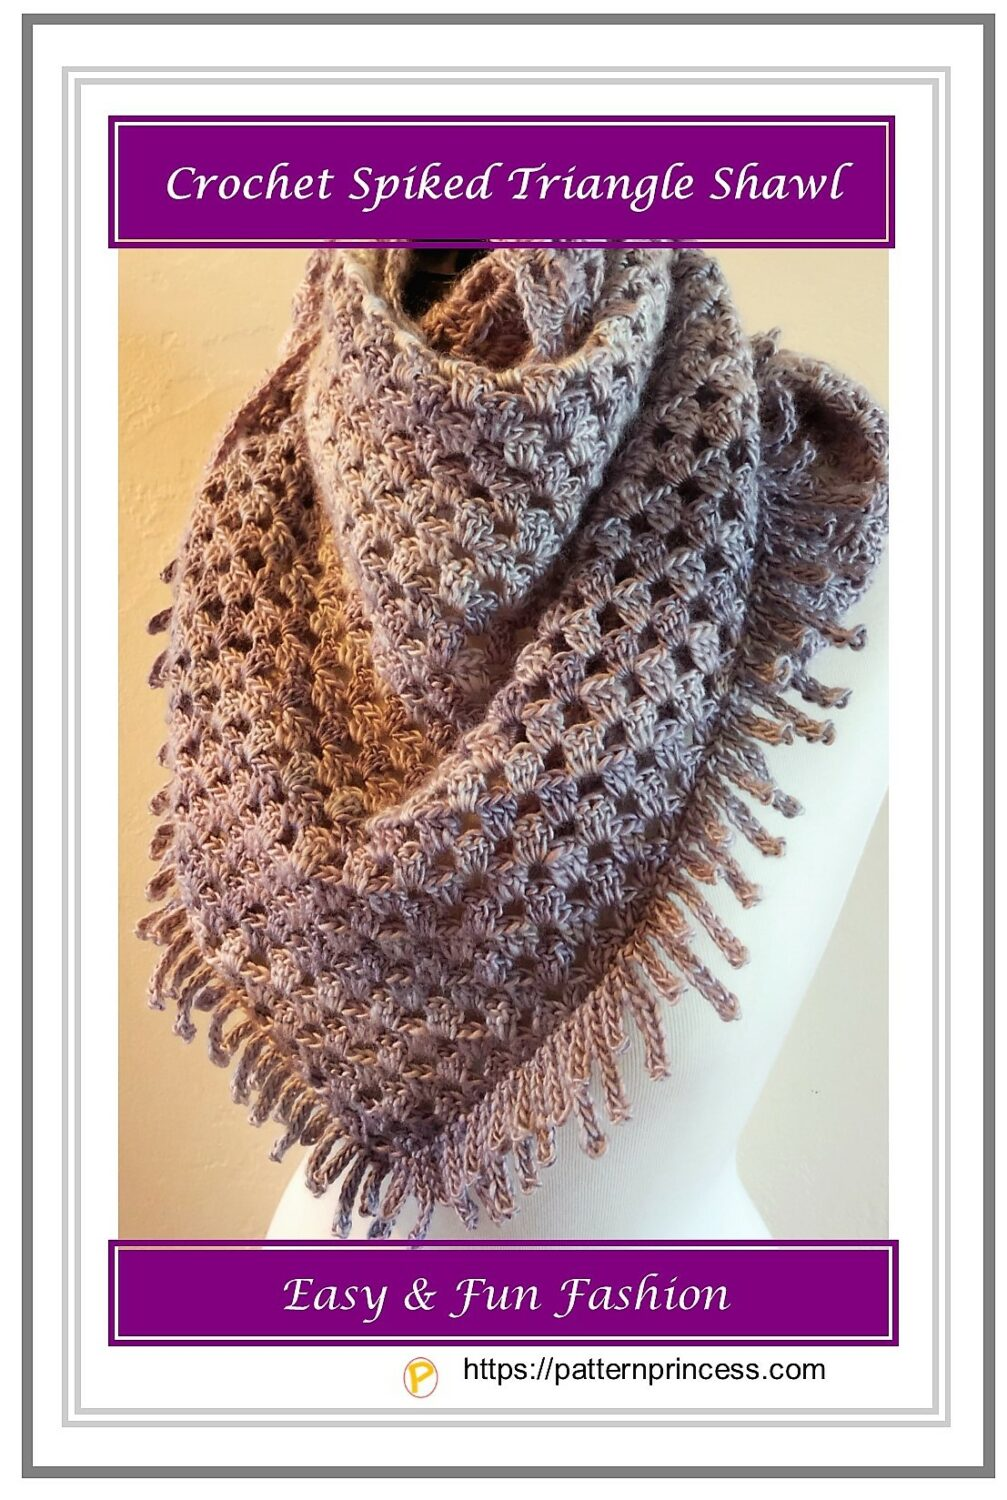 Crochet Spiked Triangle Shawl 1